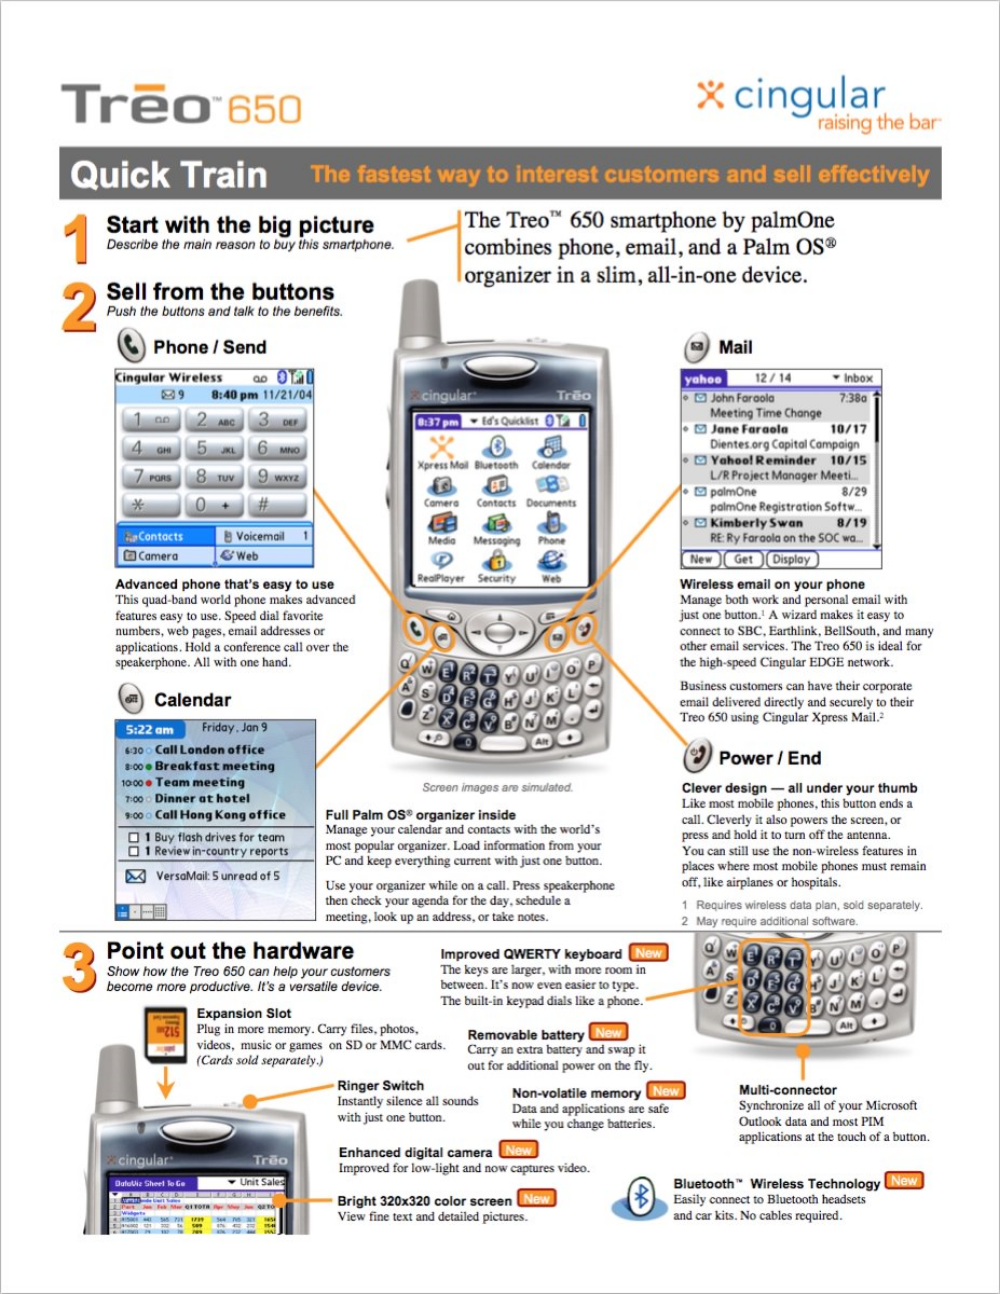 QuickTrain sales training slicks  palmOne  Five-minute sales training on paper that that taught how to quickly present the advantages of the device, how to use the device, and understand how this would help their personal bottom line.    READ MORE >>